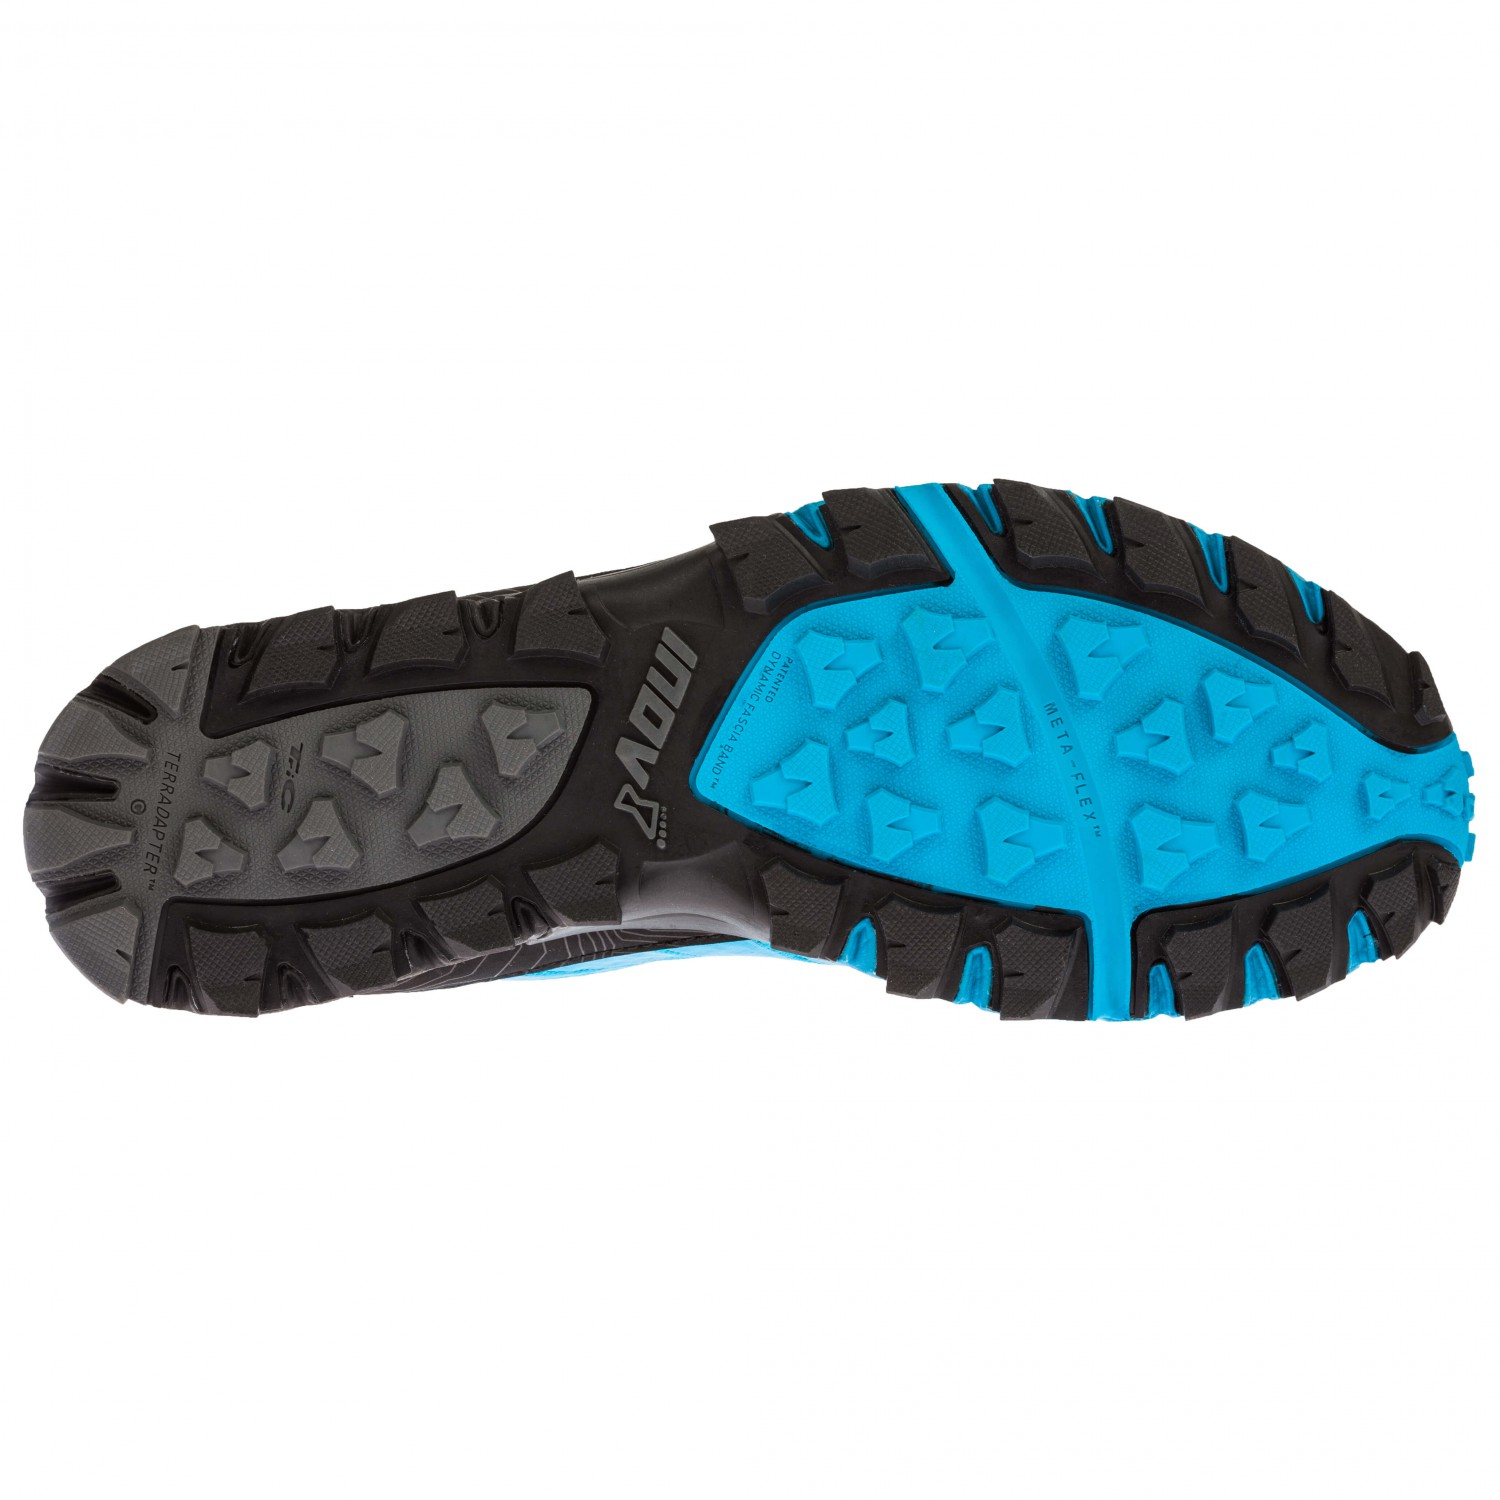 Inov-8 Trailtalon 250 - Trail Running Shoes Men s  ad01200577a